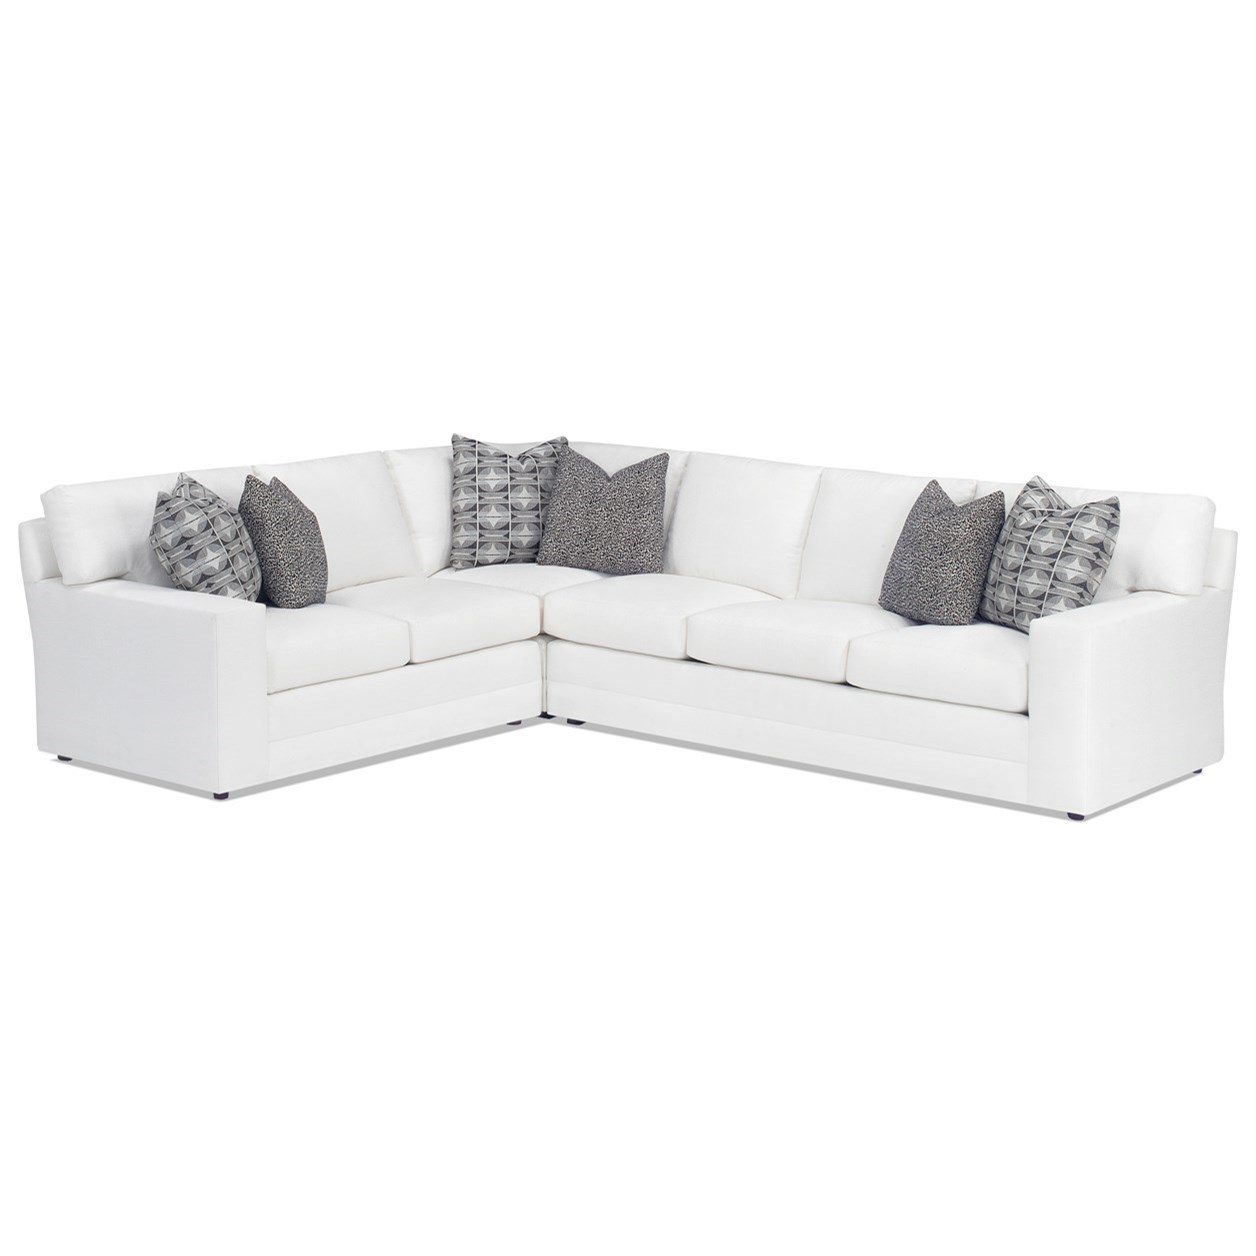 Personal Design Series Customizable Bedford 2 Pc Sectional Sofa by Lexington at Baer's Furniture